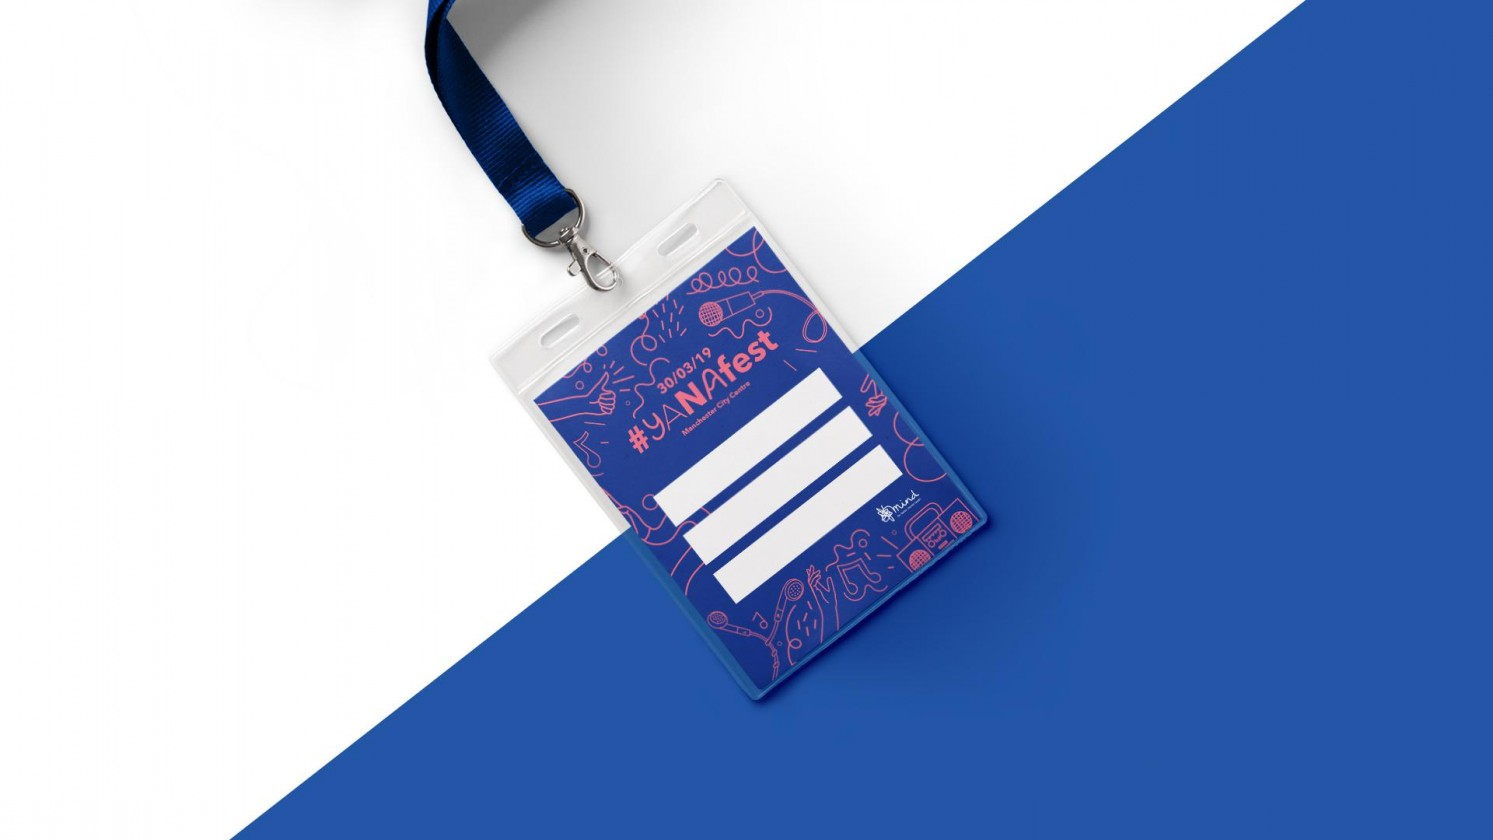 Yana branded and designed event pass